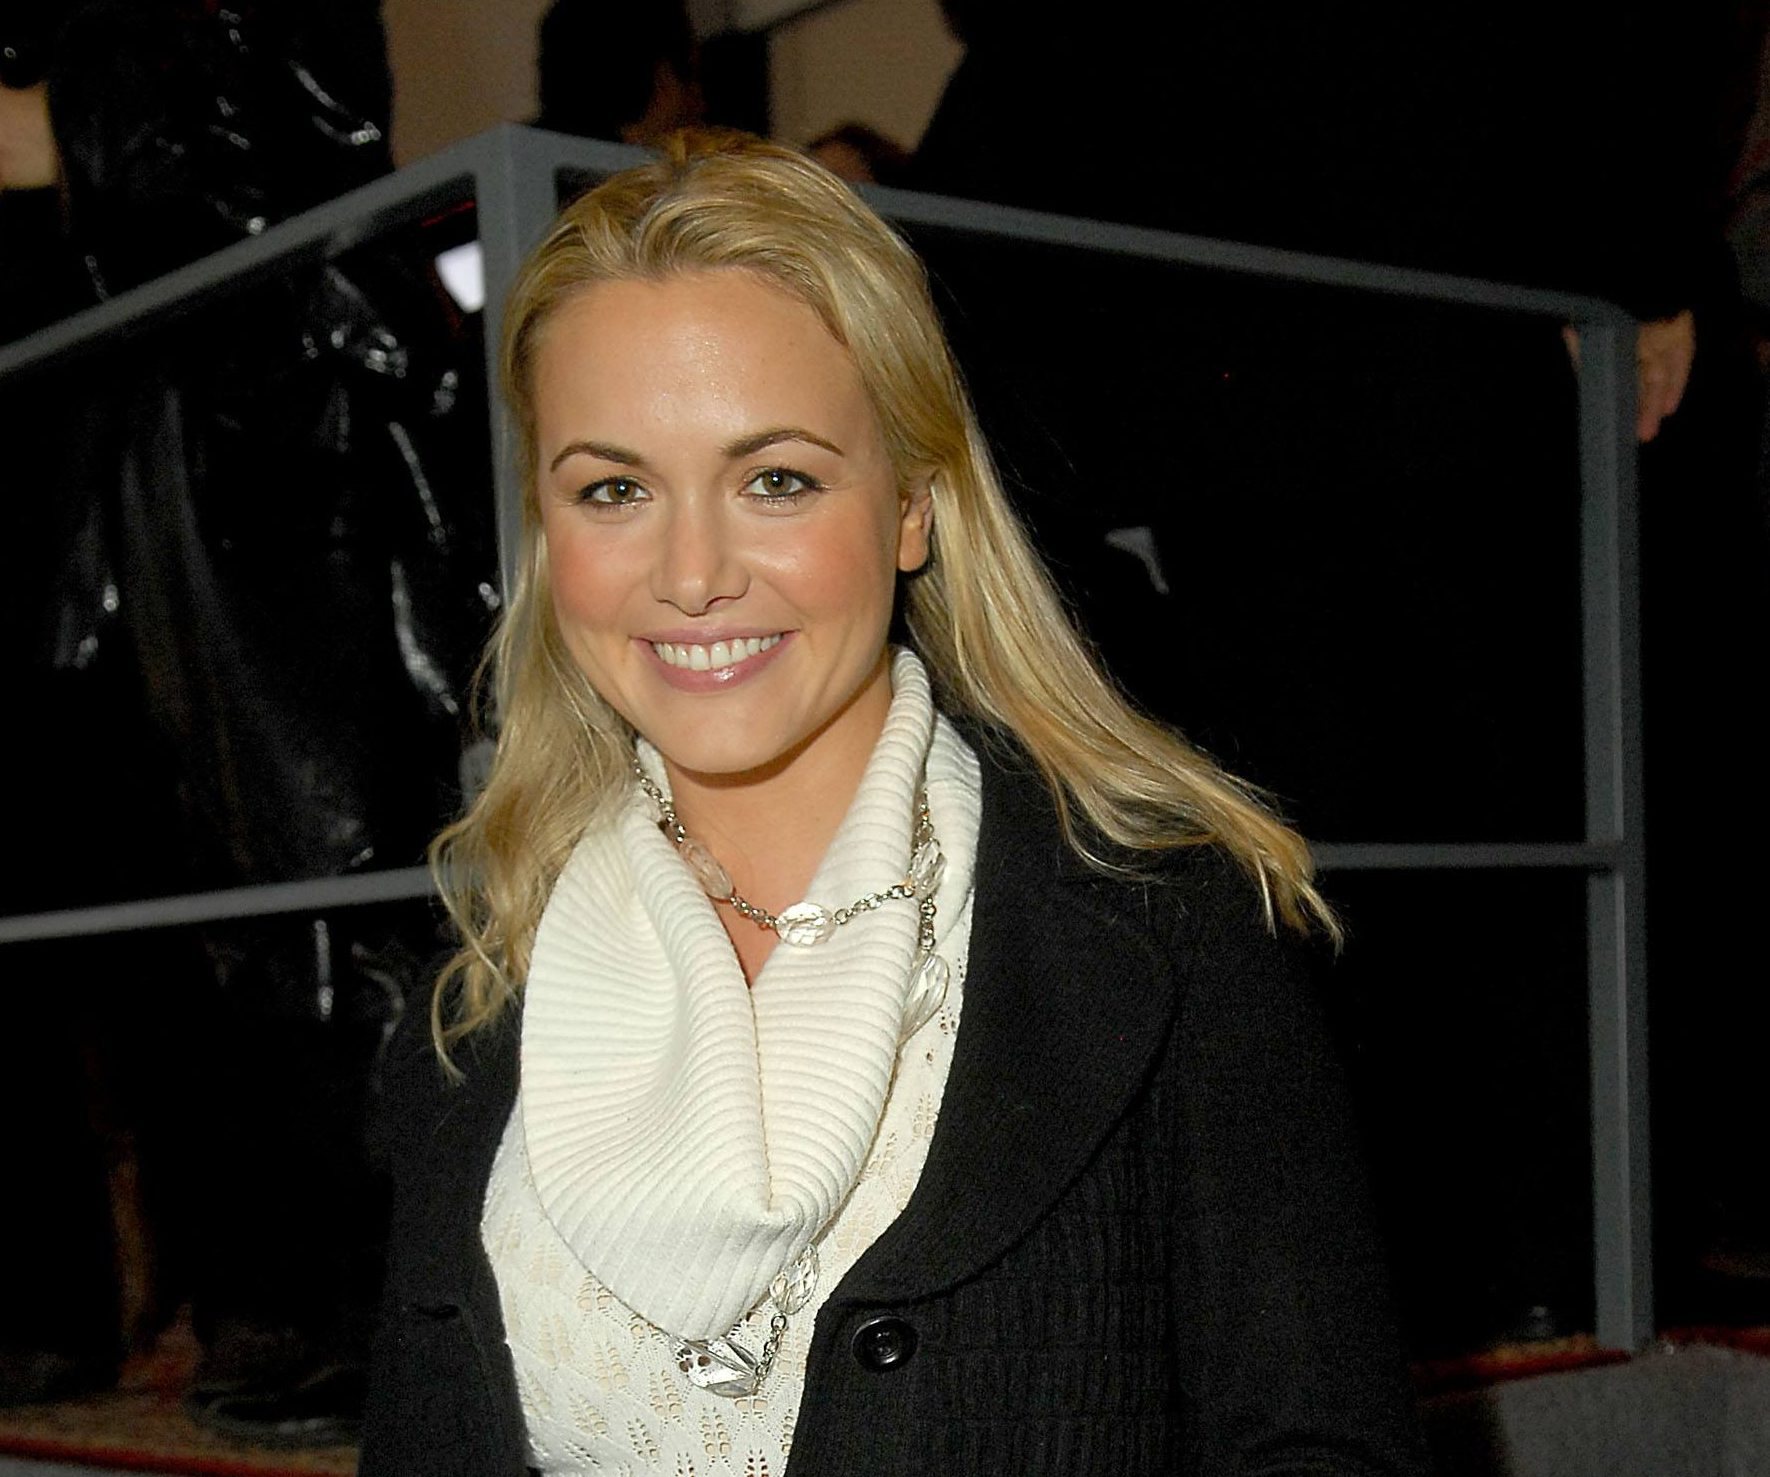 Vanessa Trump poses at the Imperia Vodka booth during Mercedes-Benz Fashion Week Fall 2008